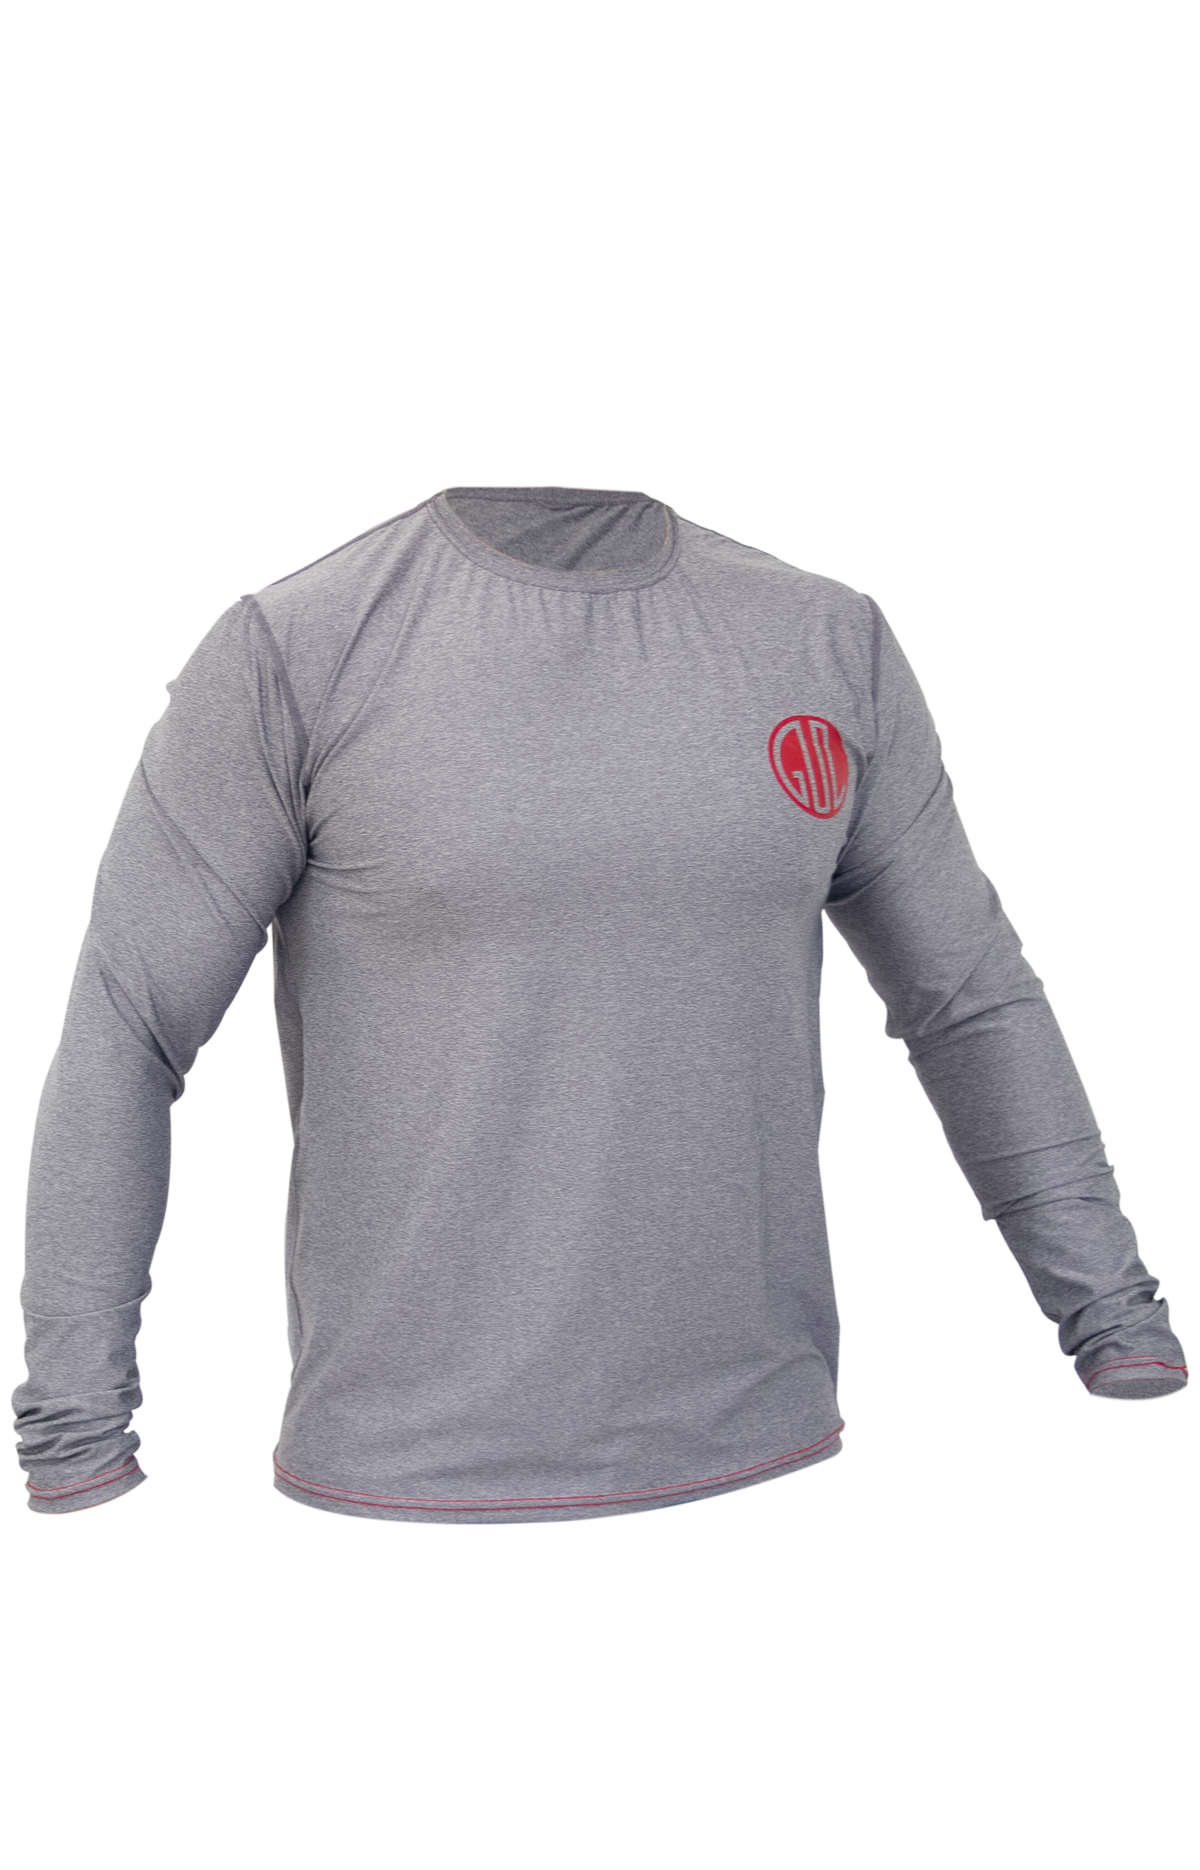 Tee Fit Long Sleeve Rashguard  RG0369-B5